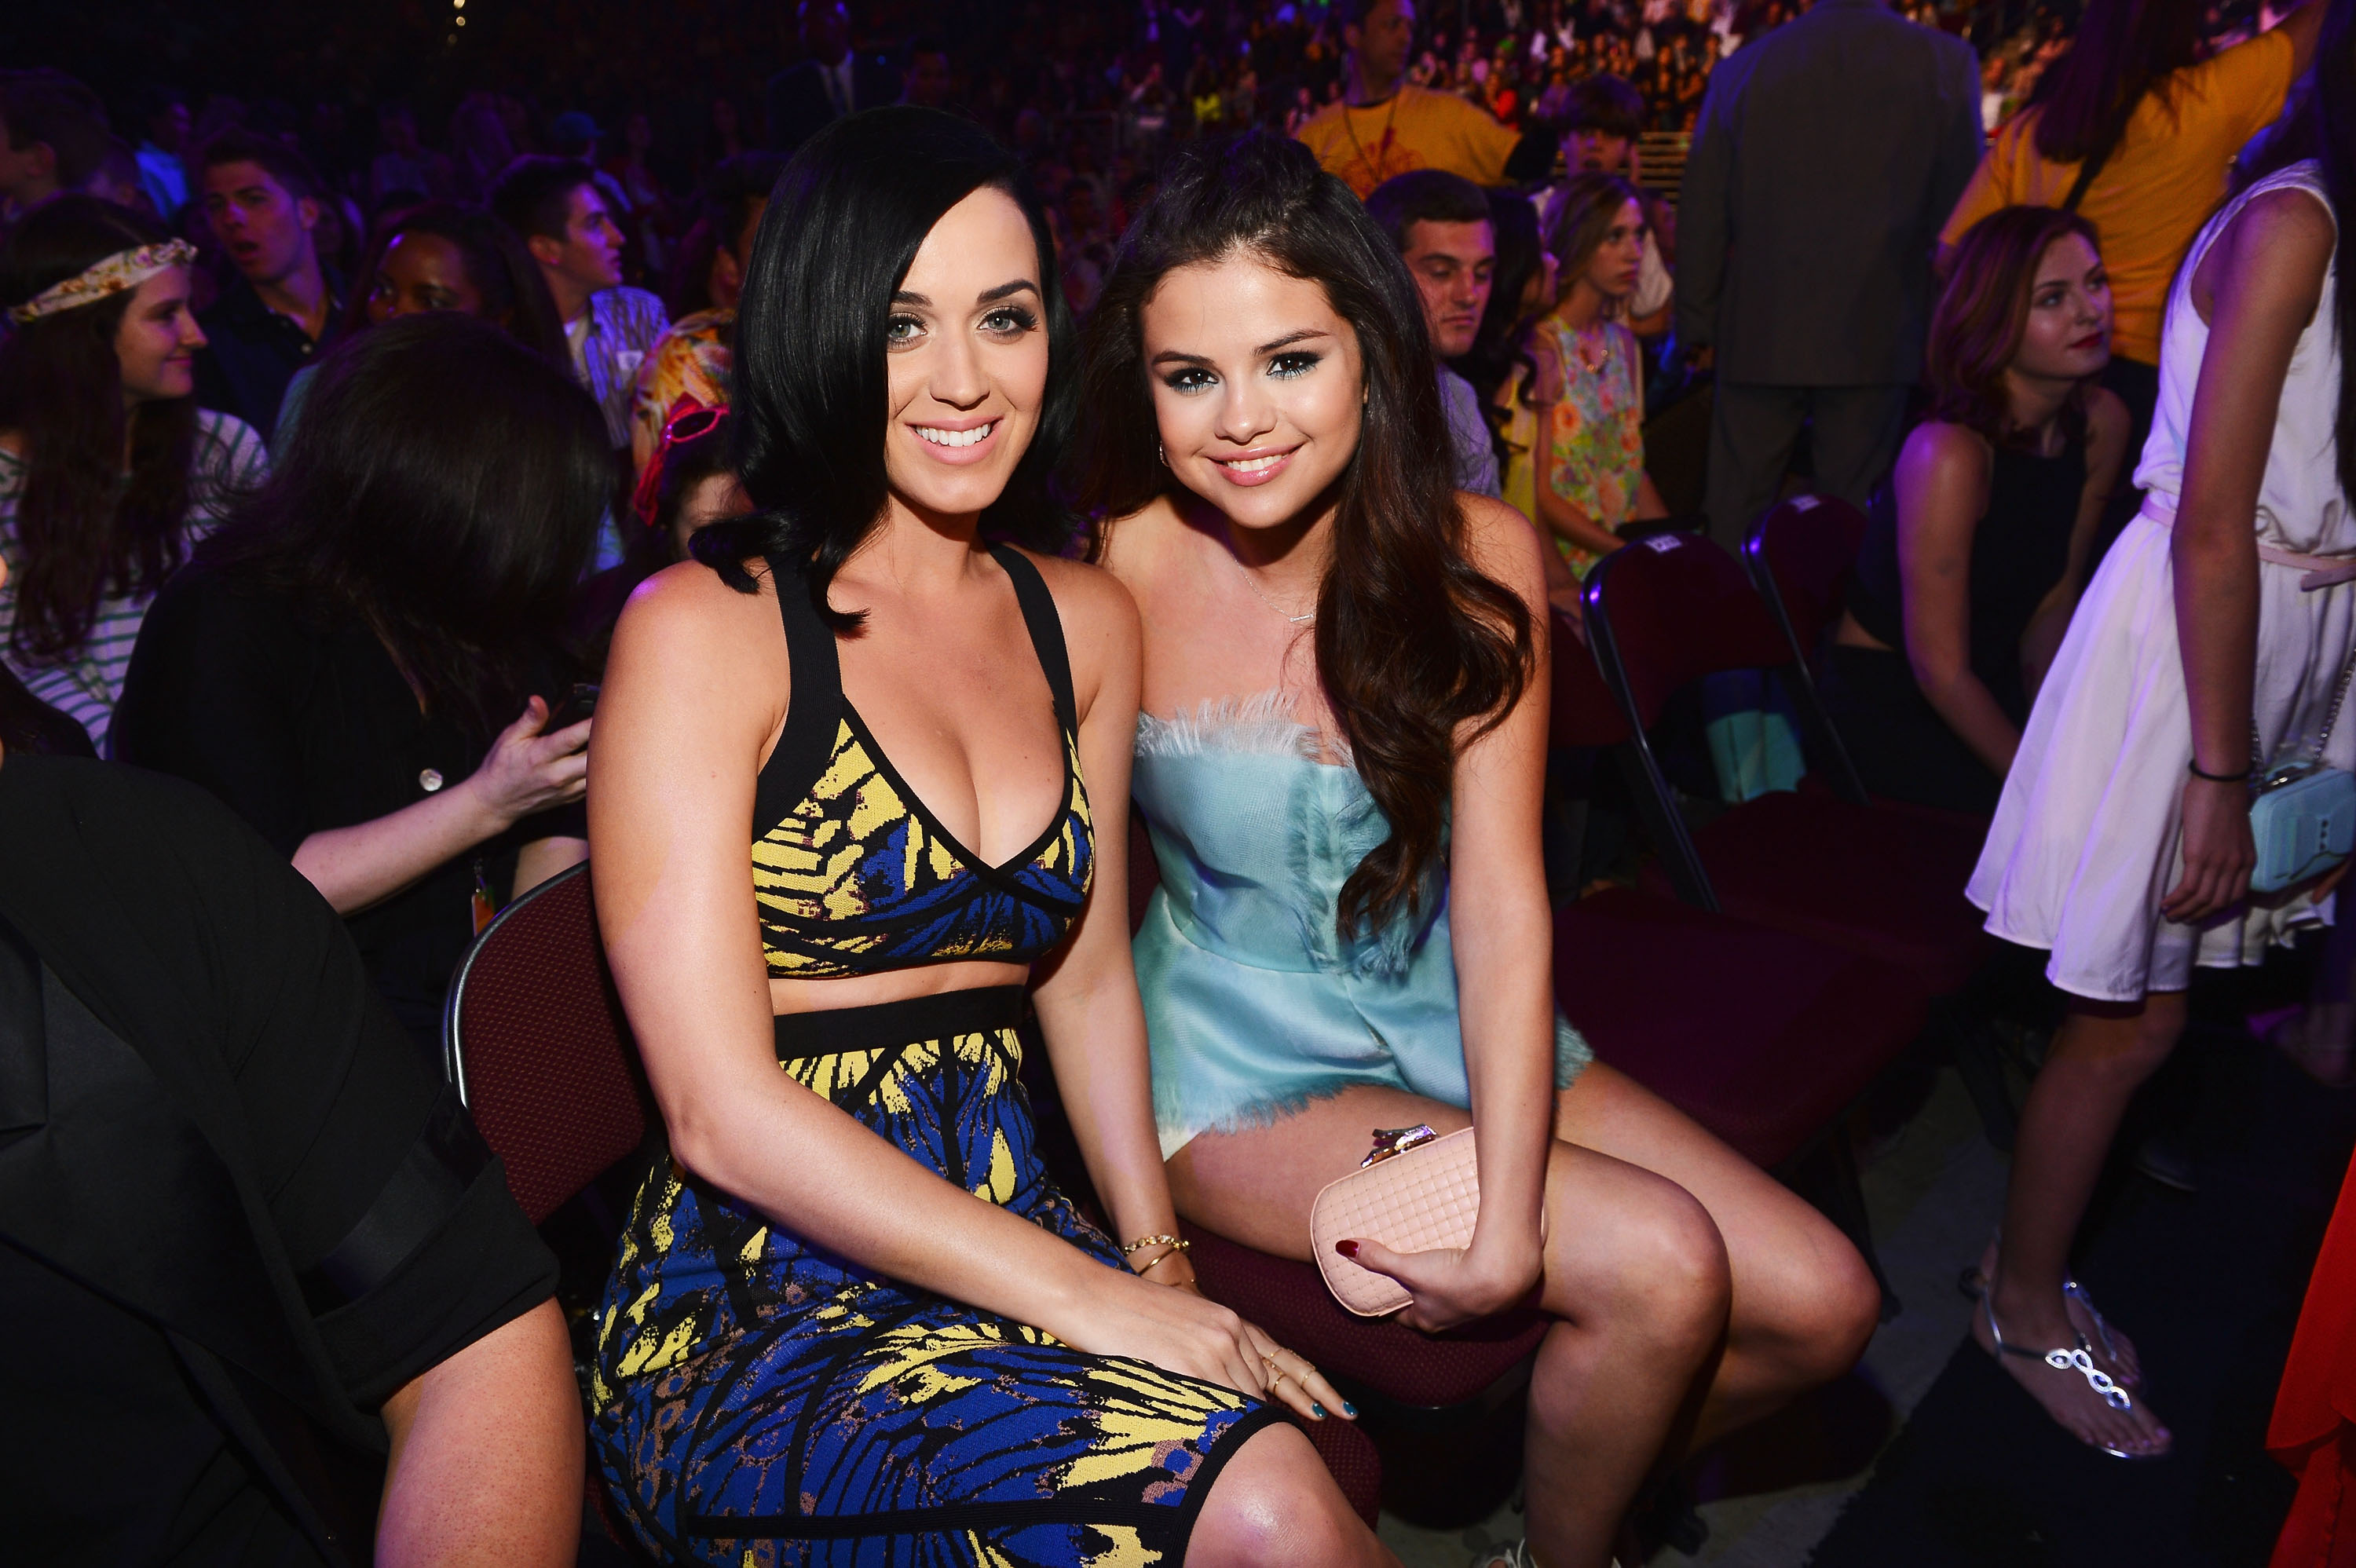 Katy Perry and Selena Gomez took seats next to each other in the audience of the Kids' Choice Awards.